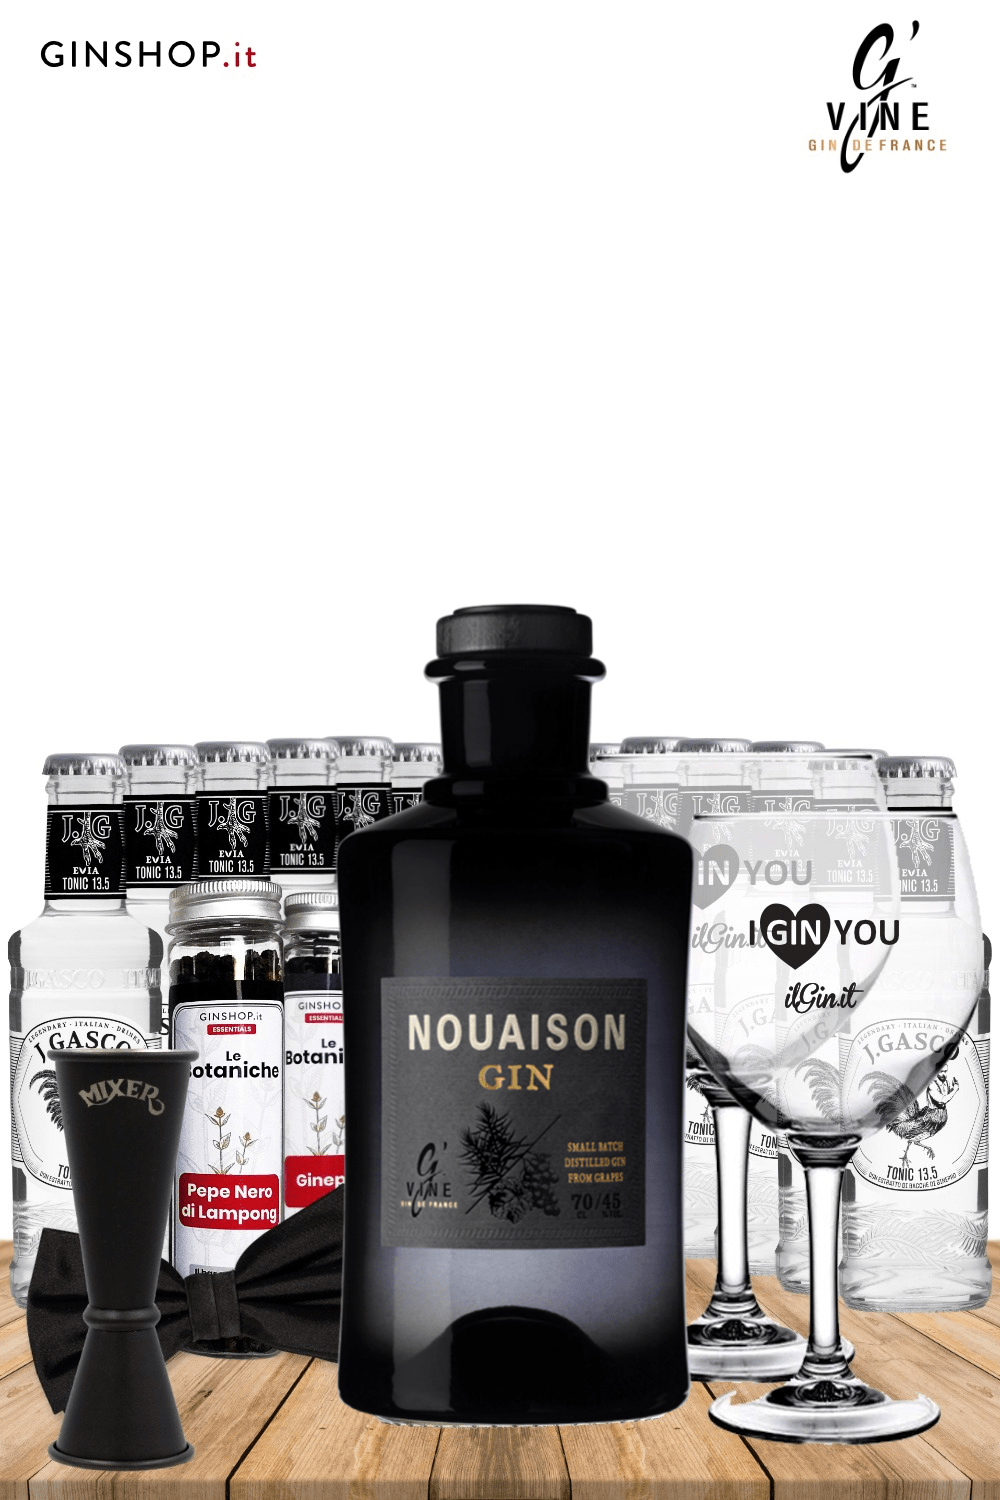 BLACK IS THE NEW GIN